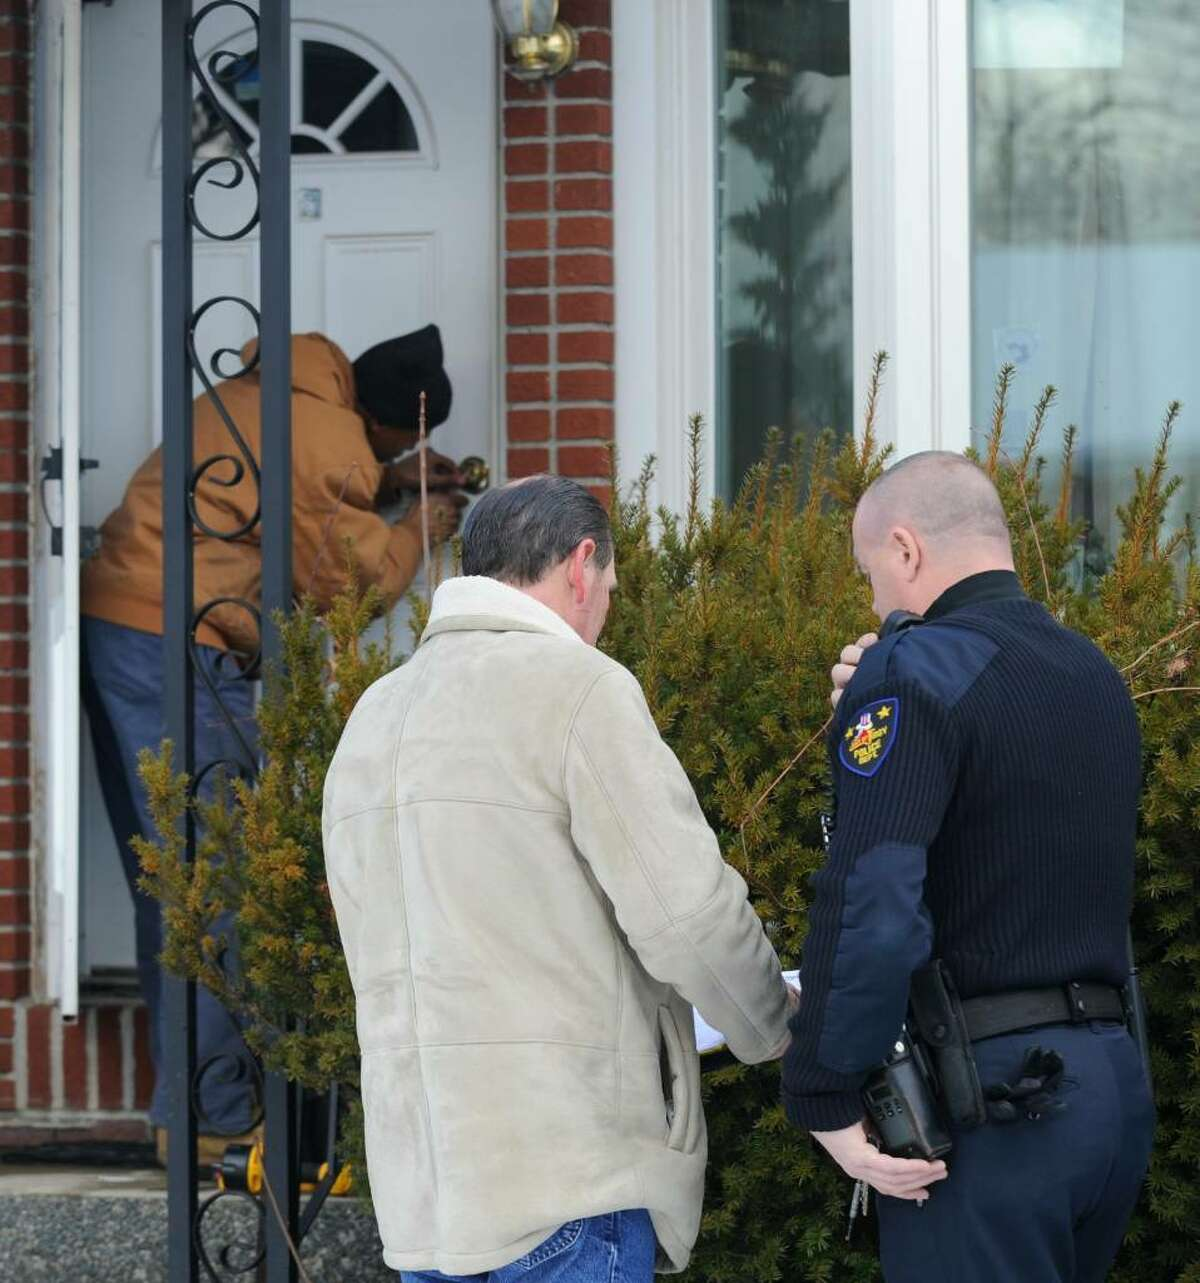 A locksmith removes the locks on 20 Industrial Park Road in Troy, New York in the presence of the City Marshall, Jack McCann(l, foreground) and a Troy Police officer, the home of Louis Pisaniello 82, an Alzheimers patient moments before the City Marshall called for his eviction December 10, 2009. (Skip Dickstein / Times Union)